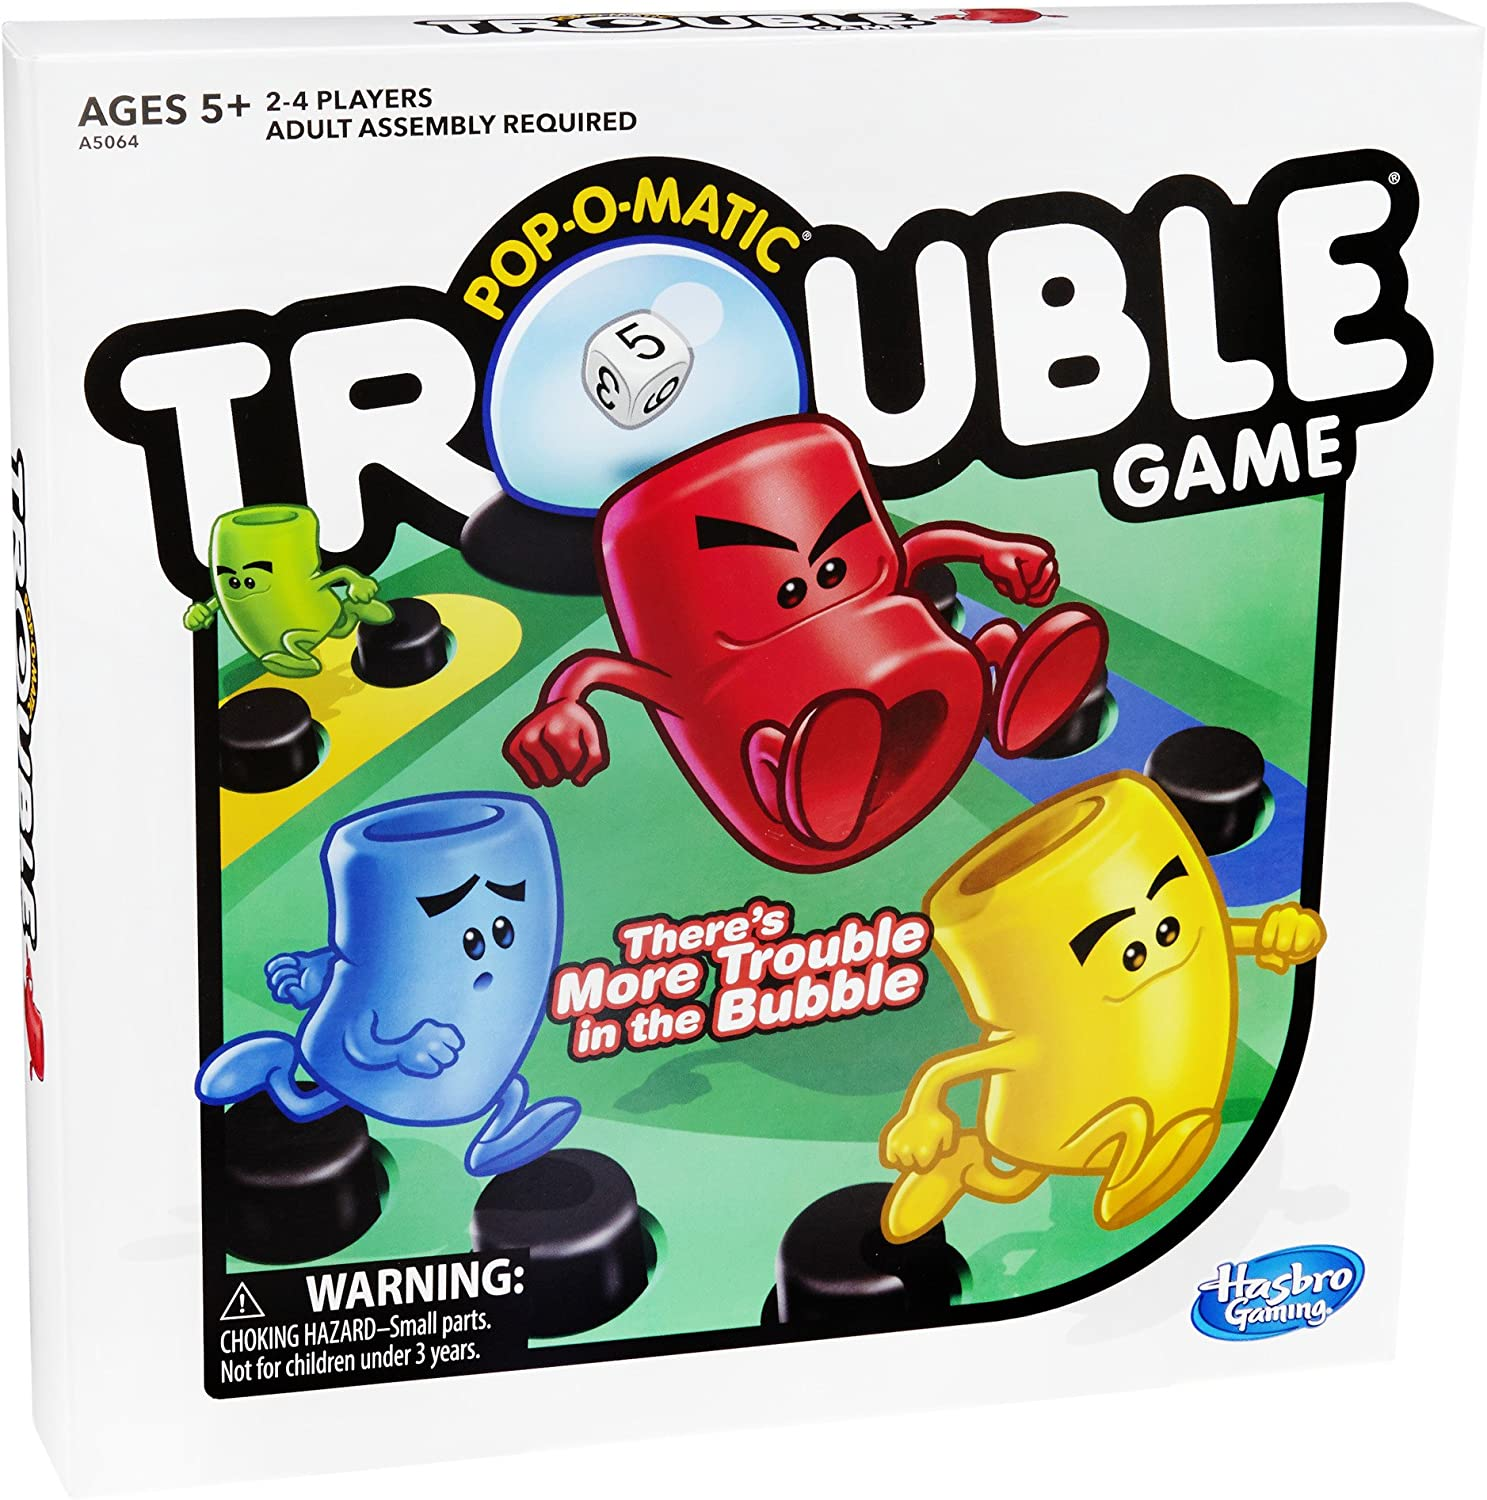 Amazon.com: Trouble Game: Toys & Games